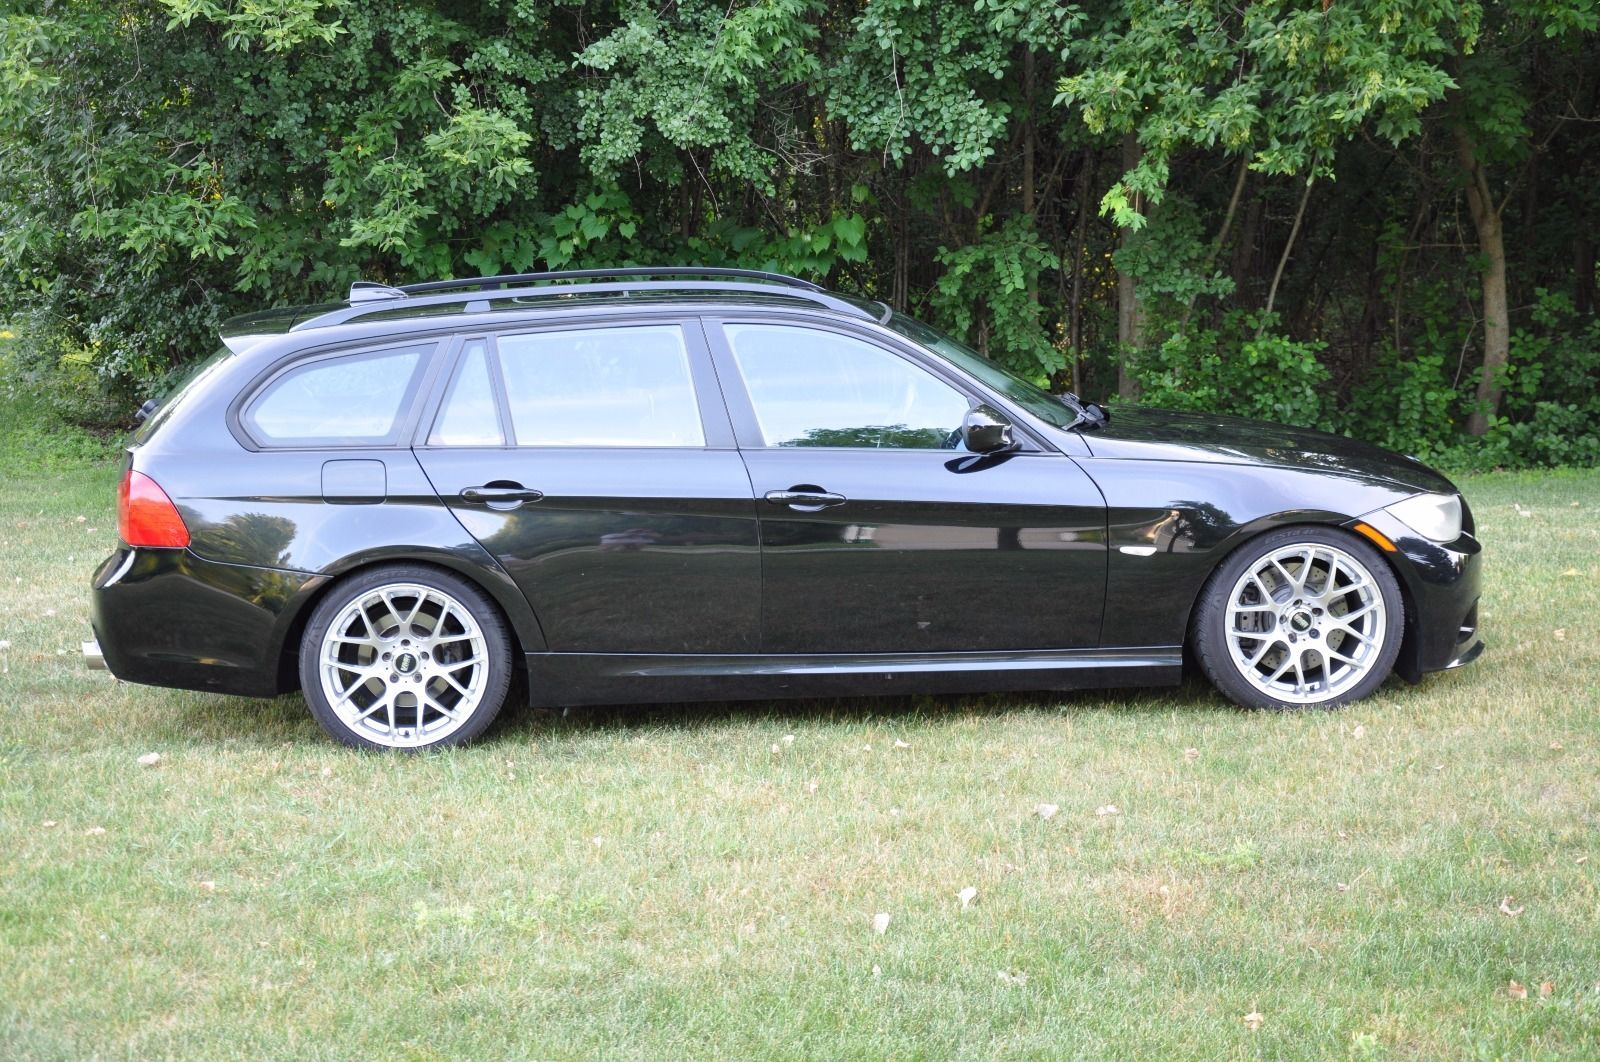 For Sale Bmw 328i Wagon With A Turbo N55 Engine Swap Depot 328 Front Wiring The Suspension Was Upgraded Hr Cup Shocks And Sport Springs M3 Control Arms Brakes Were Improved 335i Units Ecs Slotted